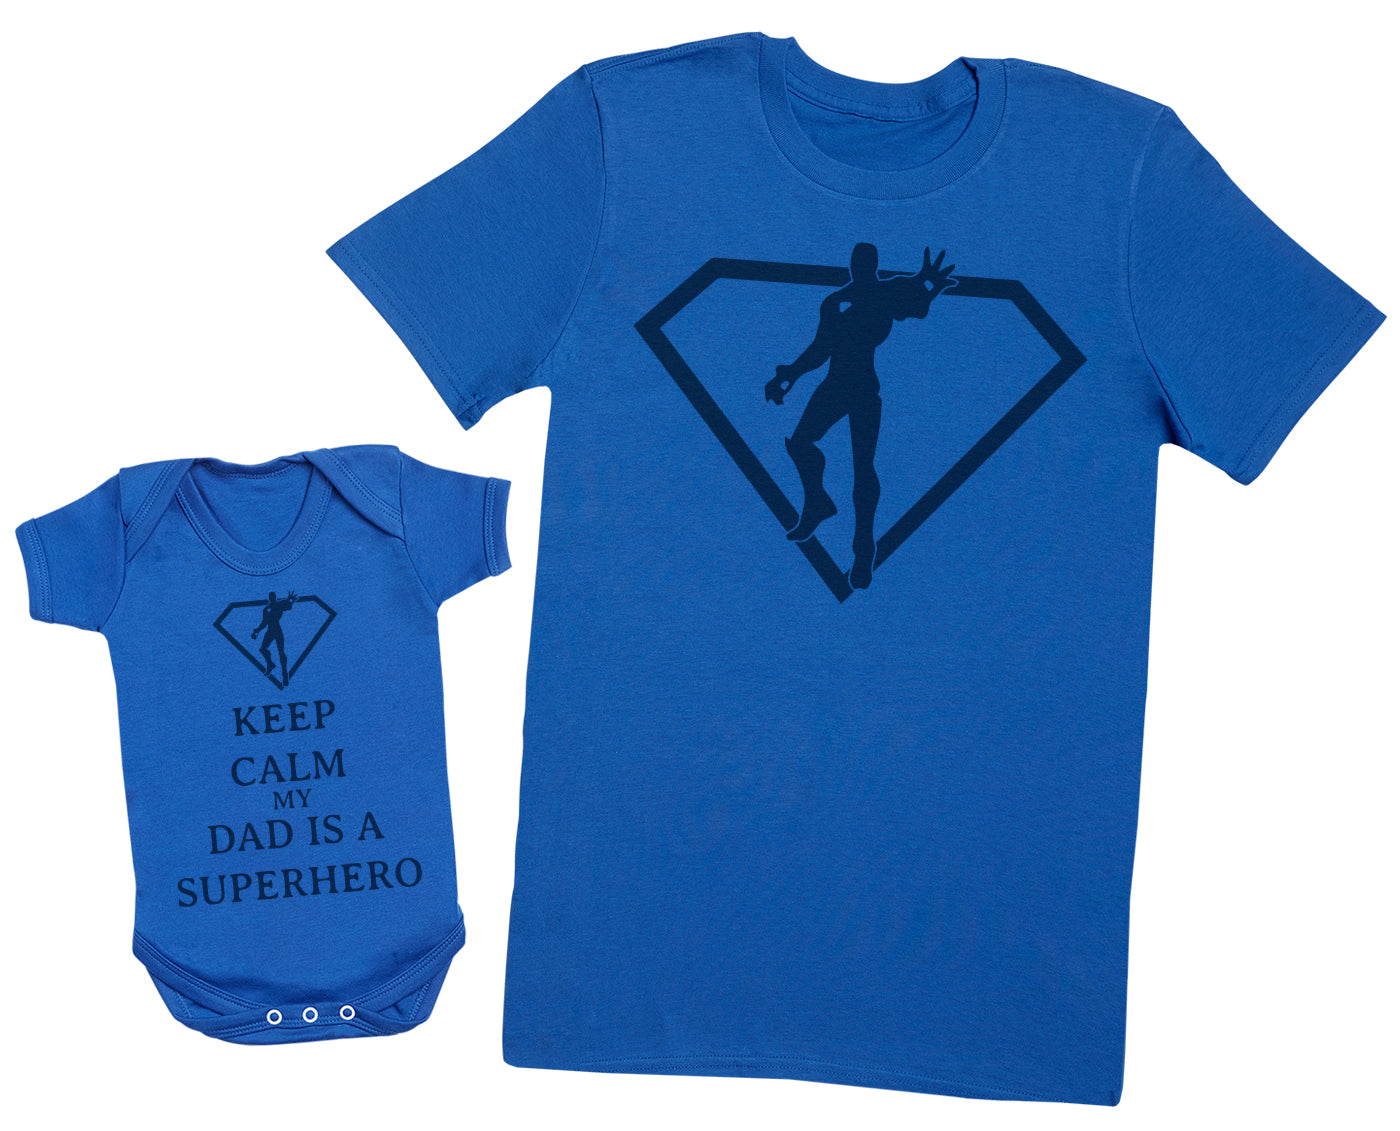 Keep Calm My Dad Is A Superhero Matching Father Baby Gift Set - Mens T Shirt & Baby Bodysuit